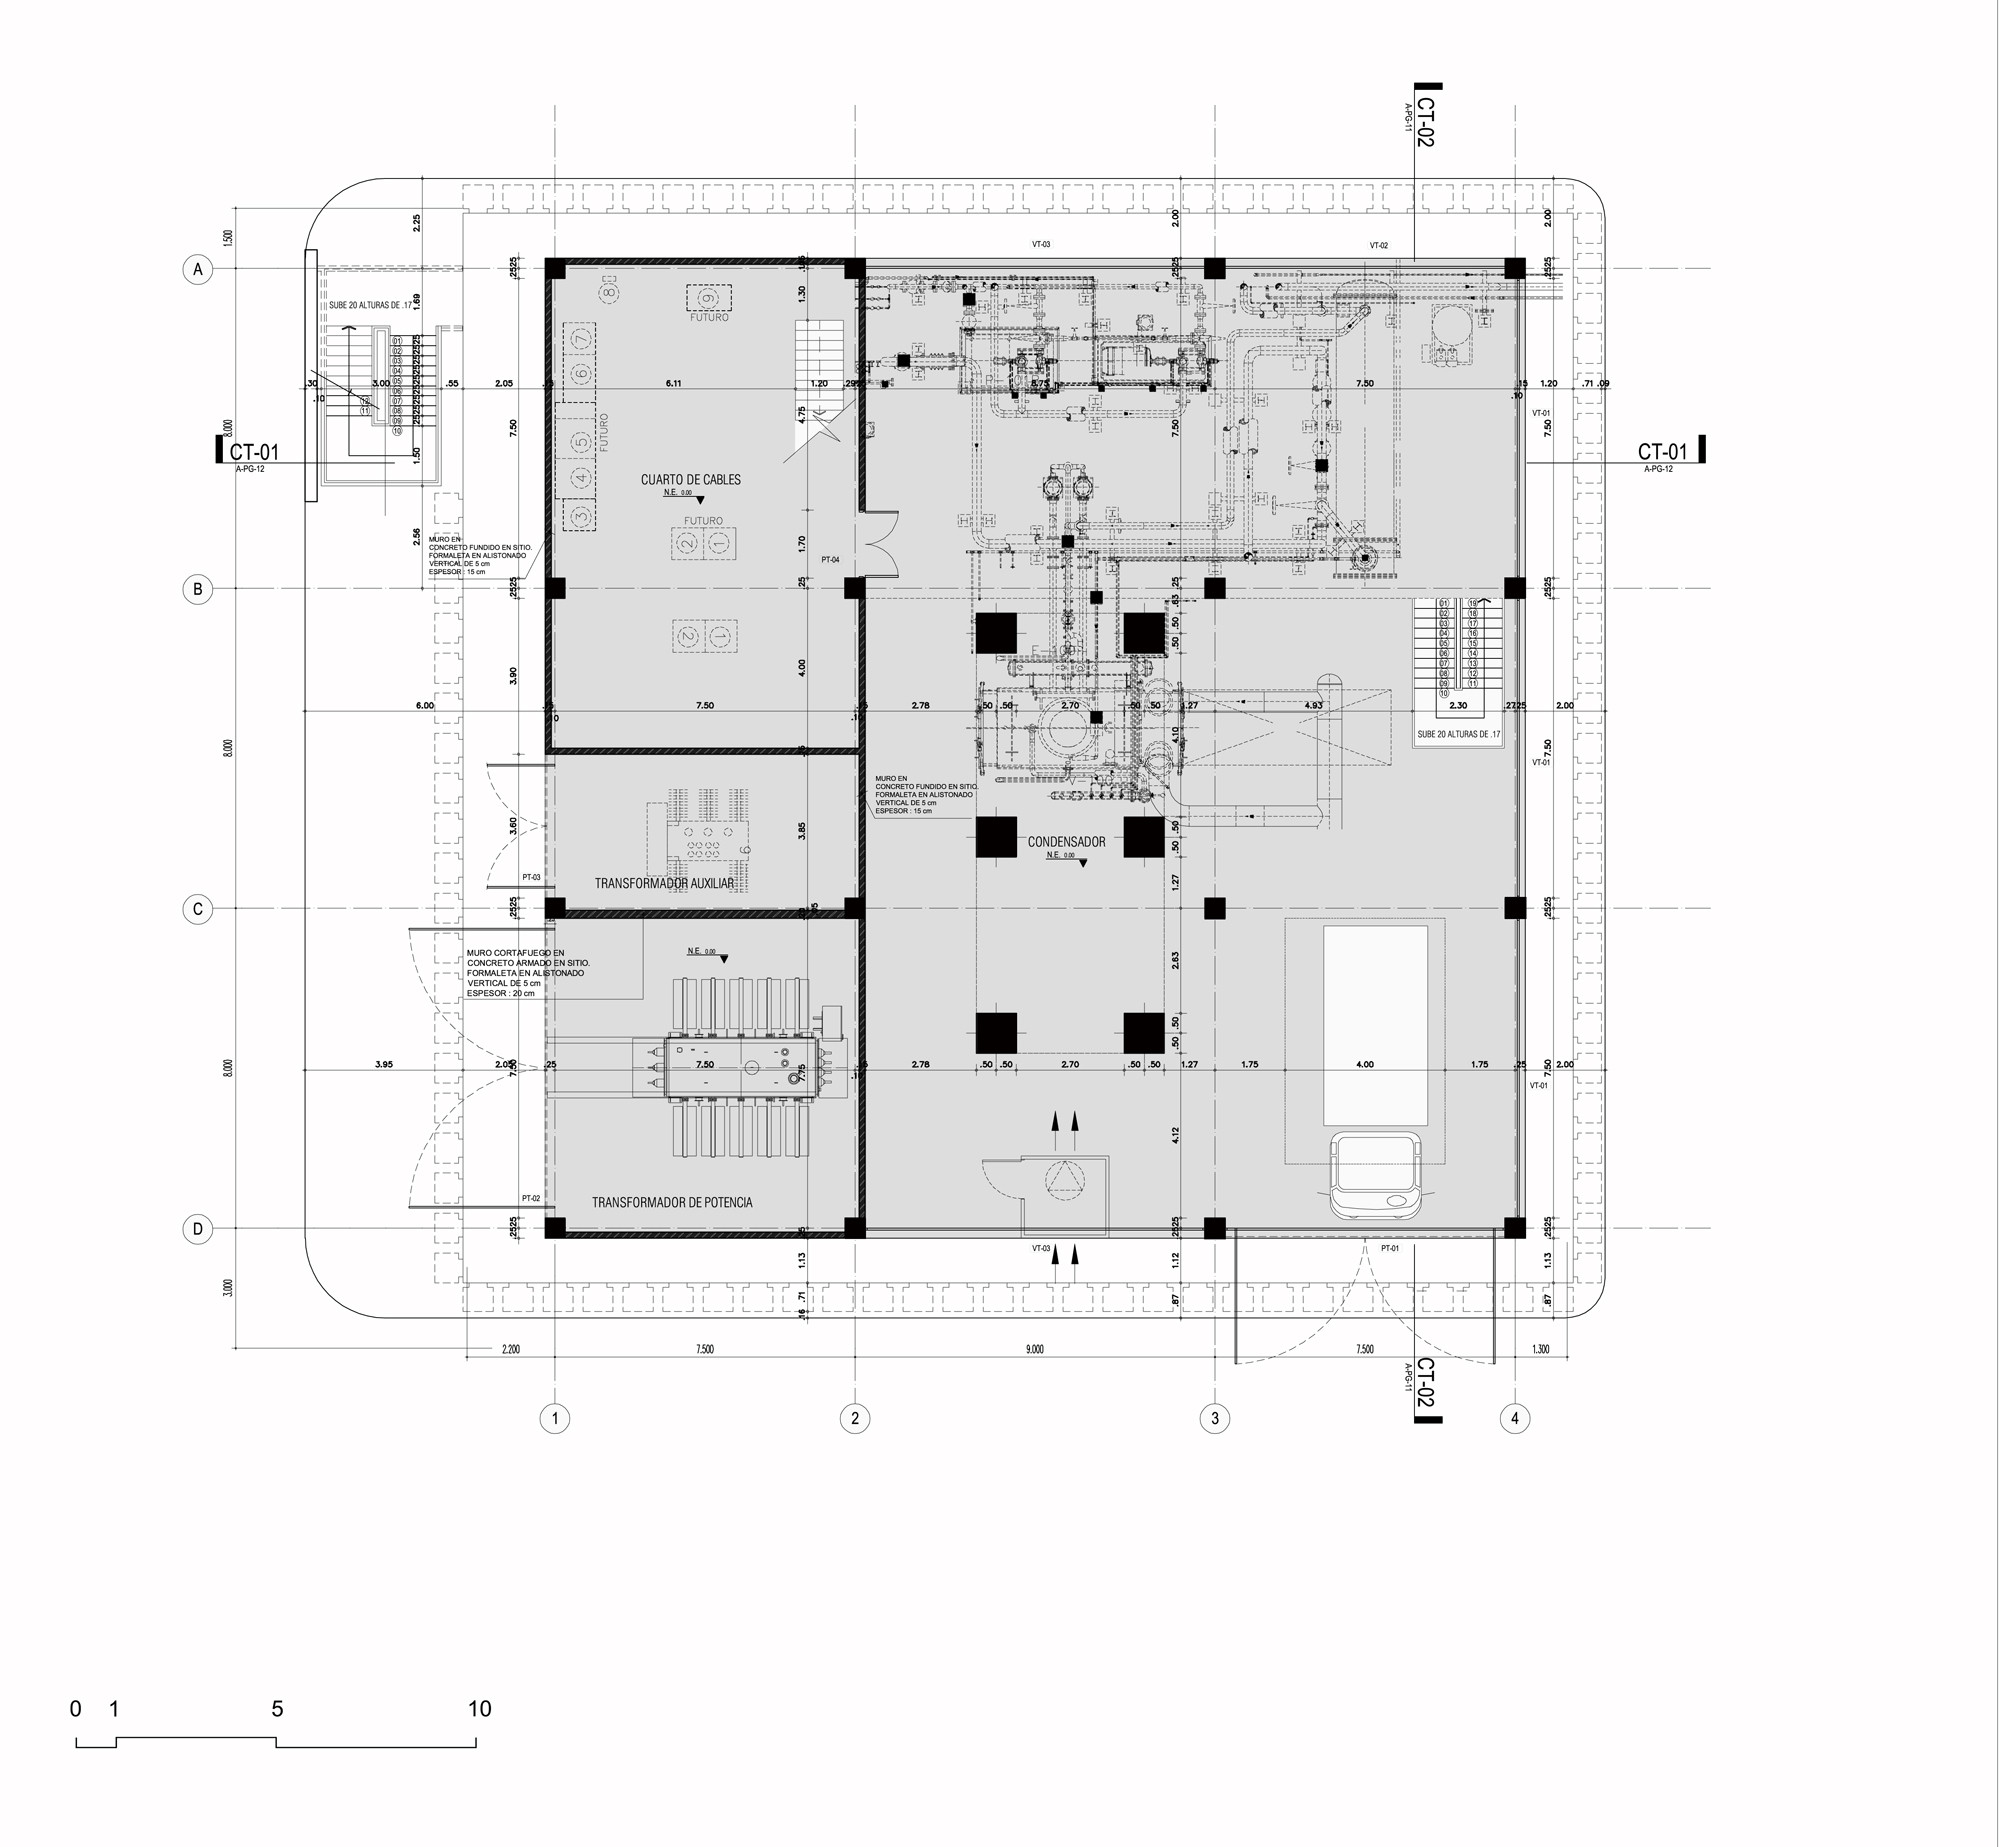 simple electrical plan - 1000×923